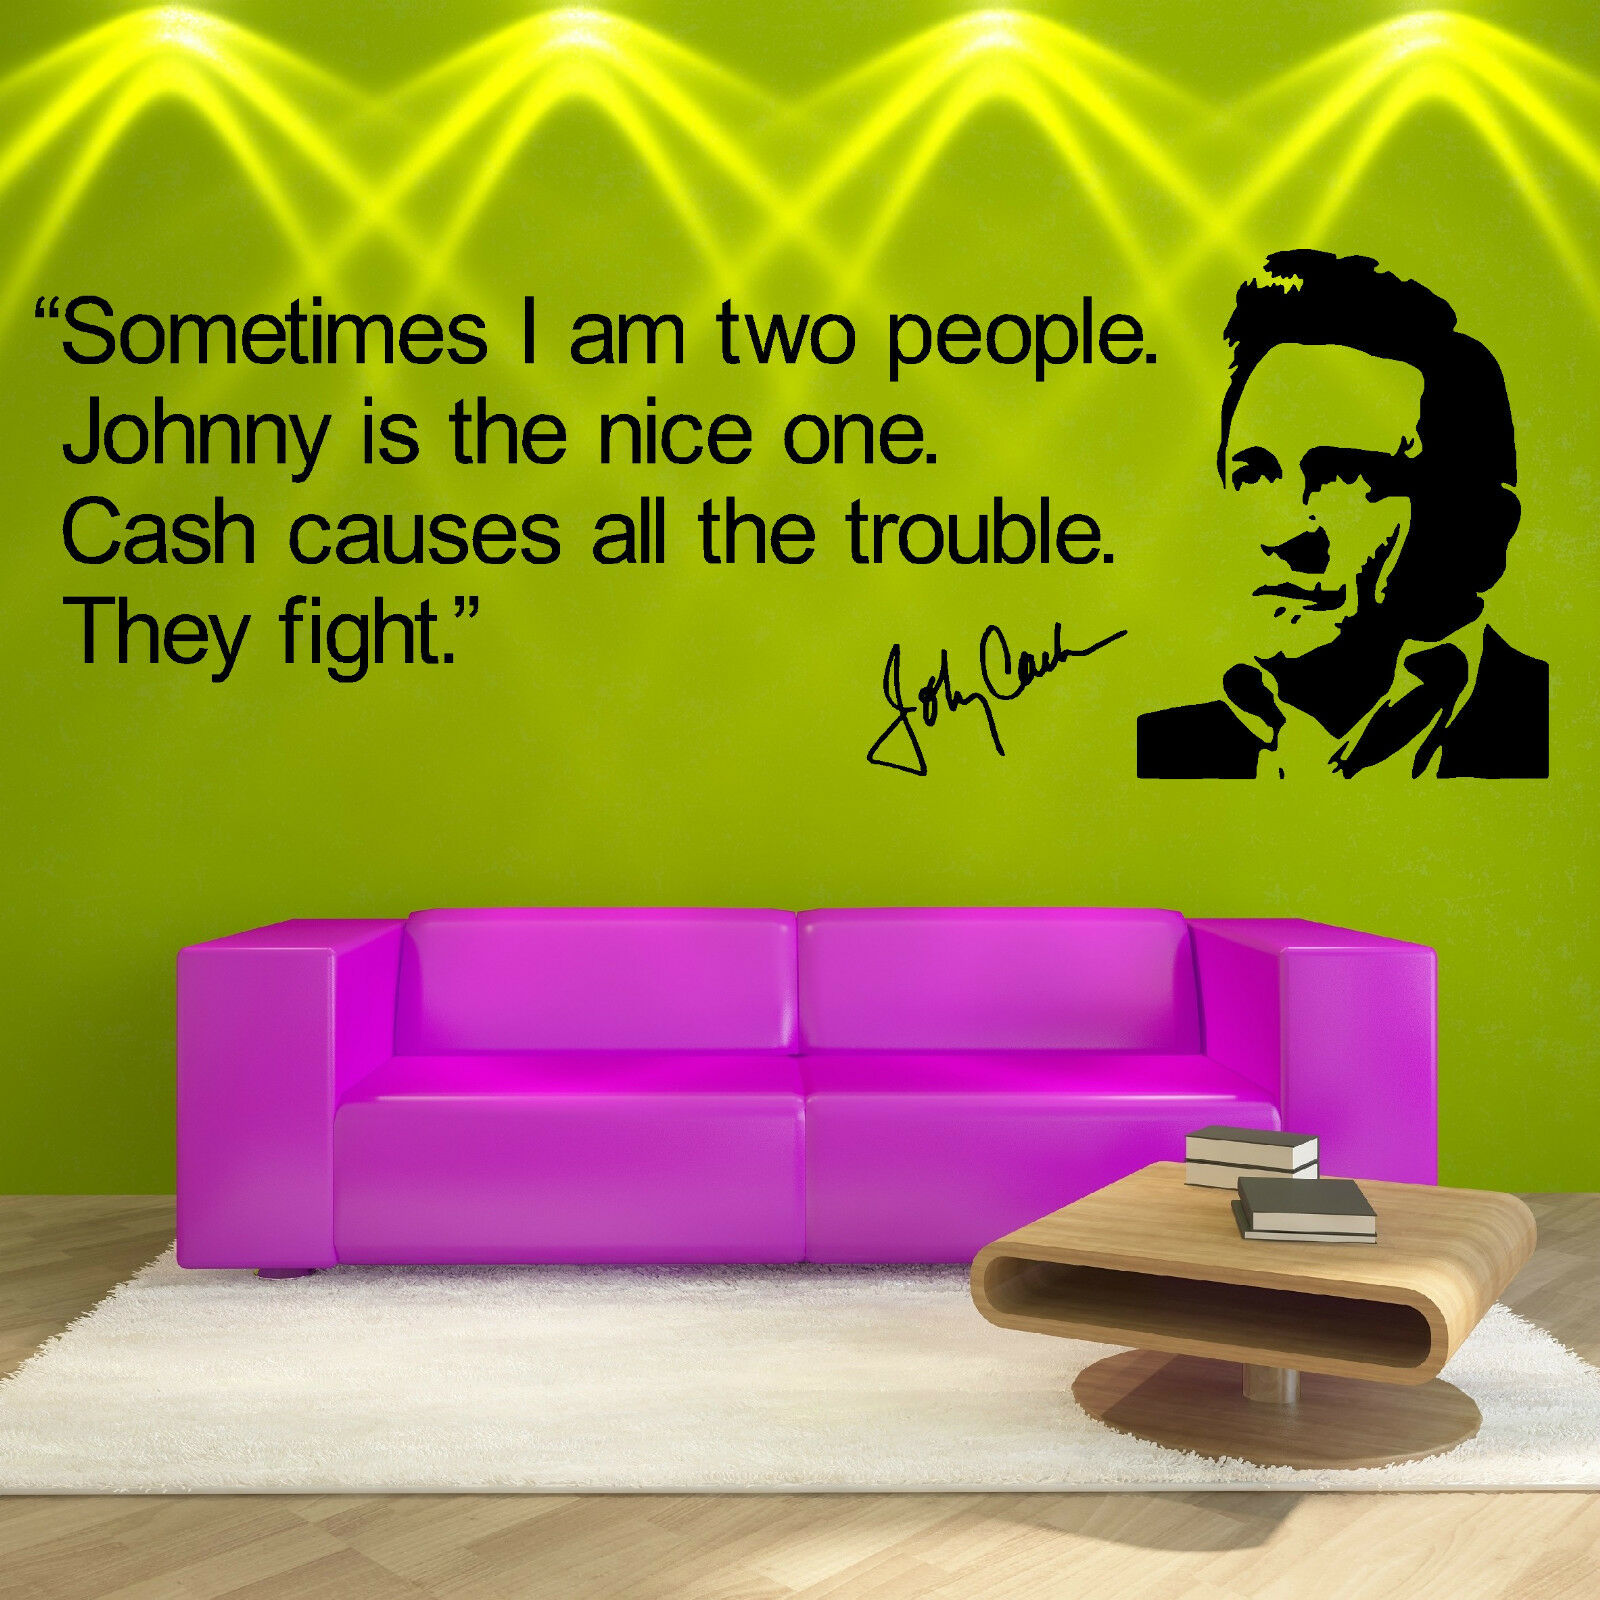 Johnny Cash QUOTE VINYL WALL ART STICKER ROOM DECAL WALL QUOTE | eBay